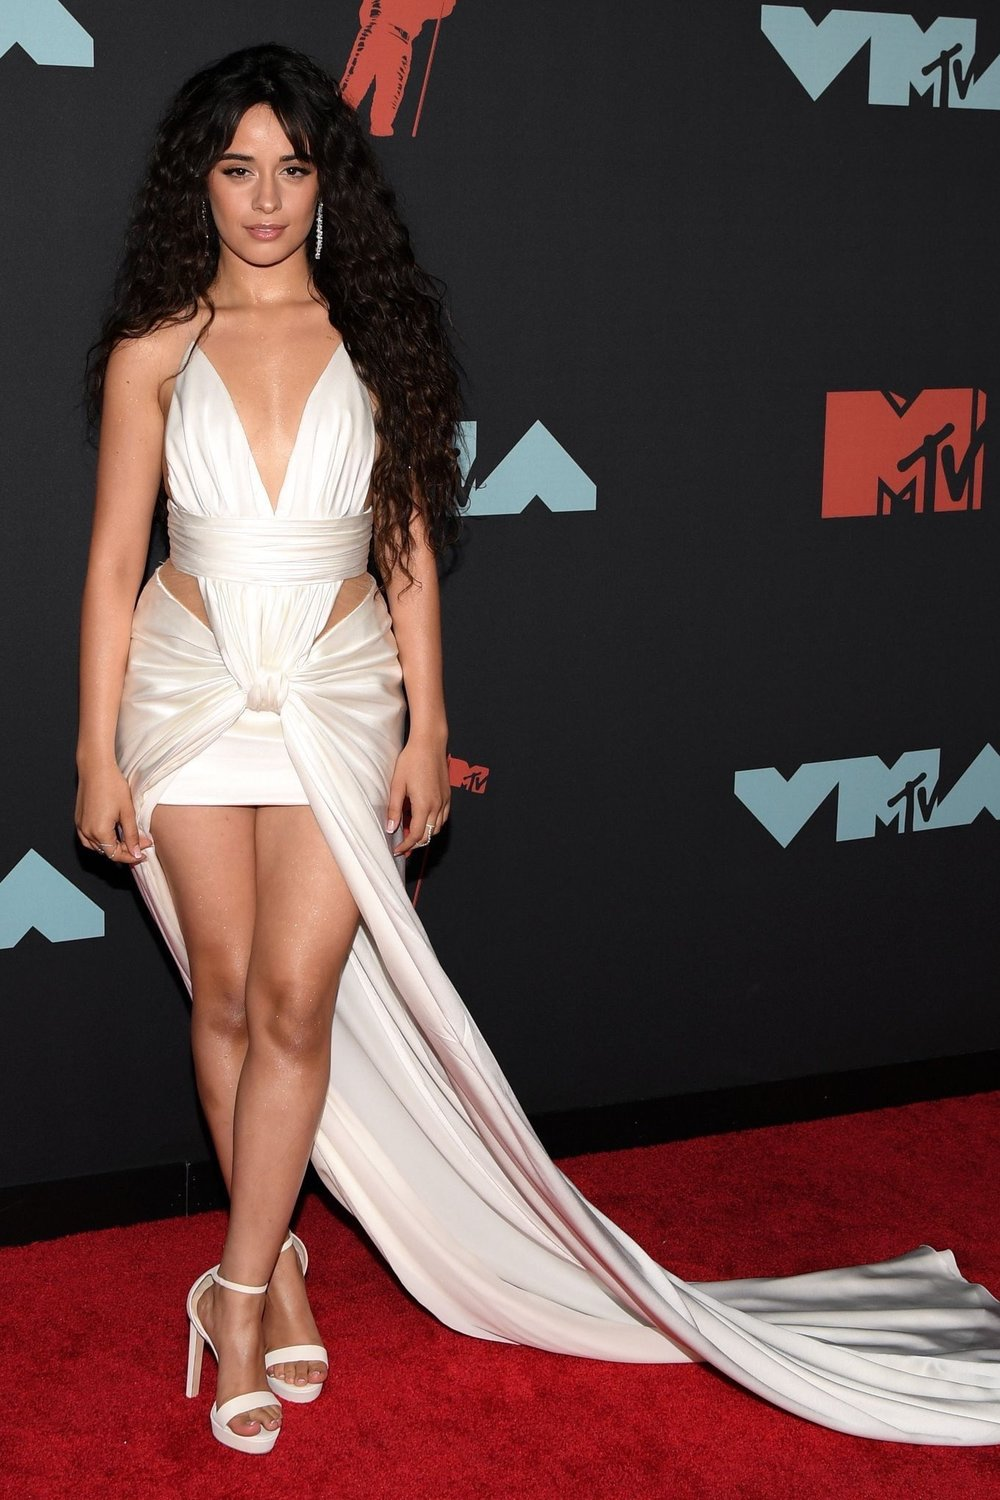 camila-cabello-balmain-white-dress-at-vmas.jpg